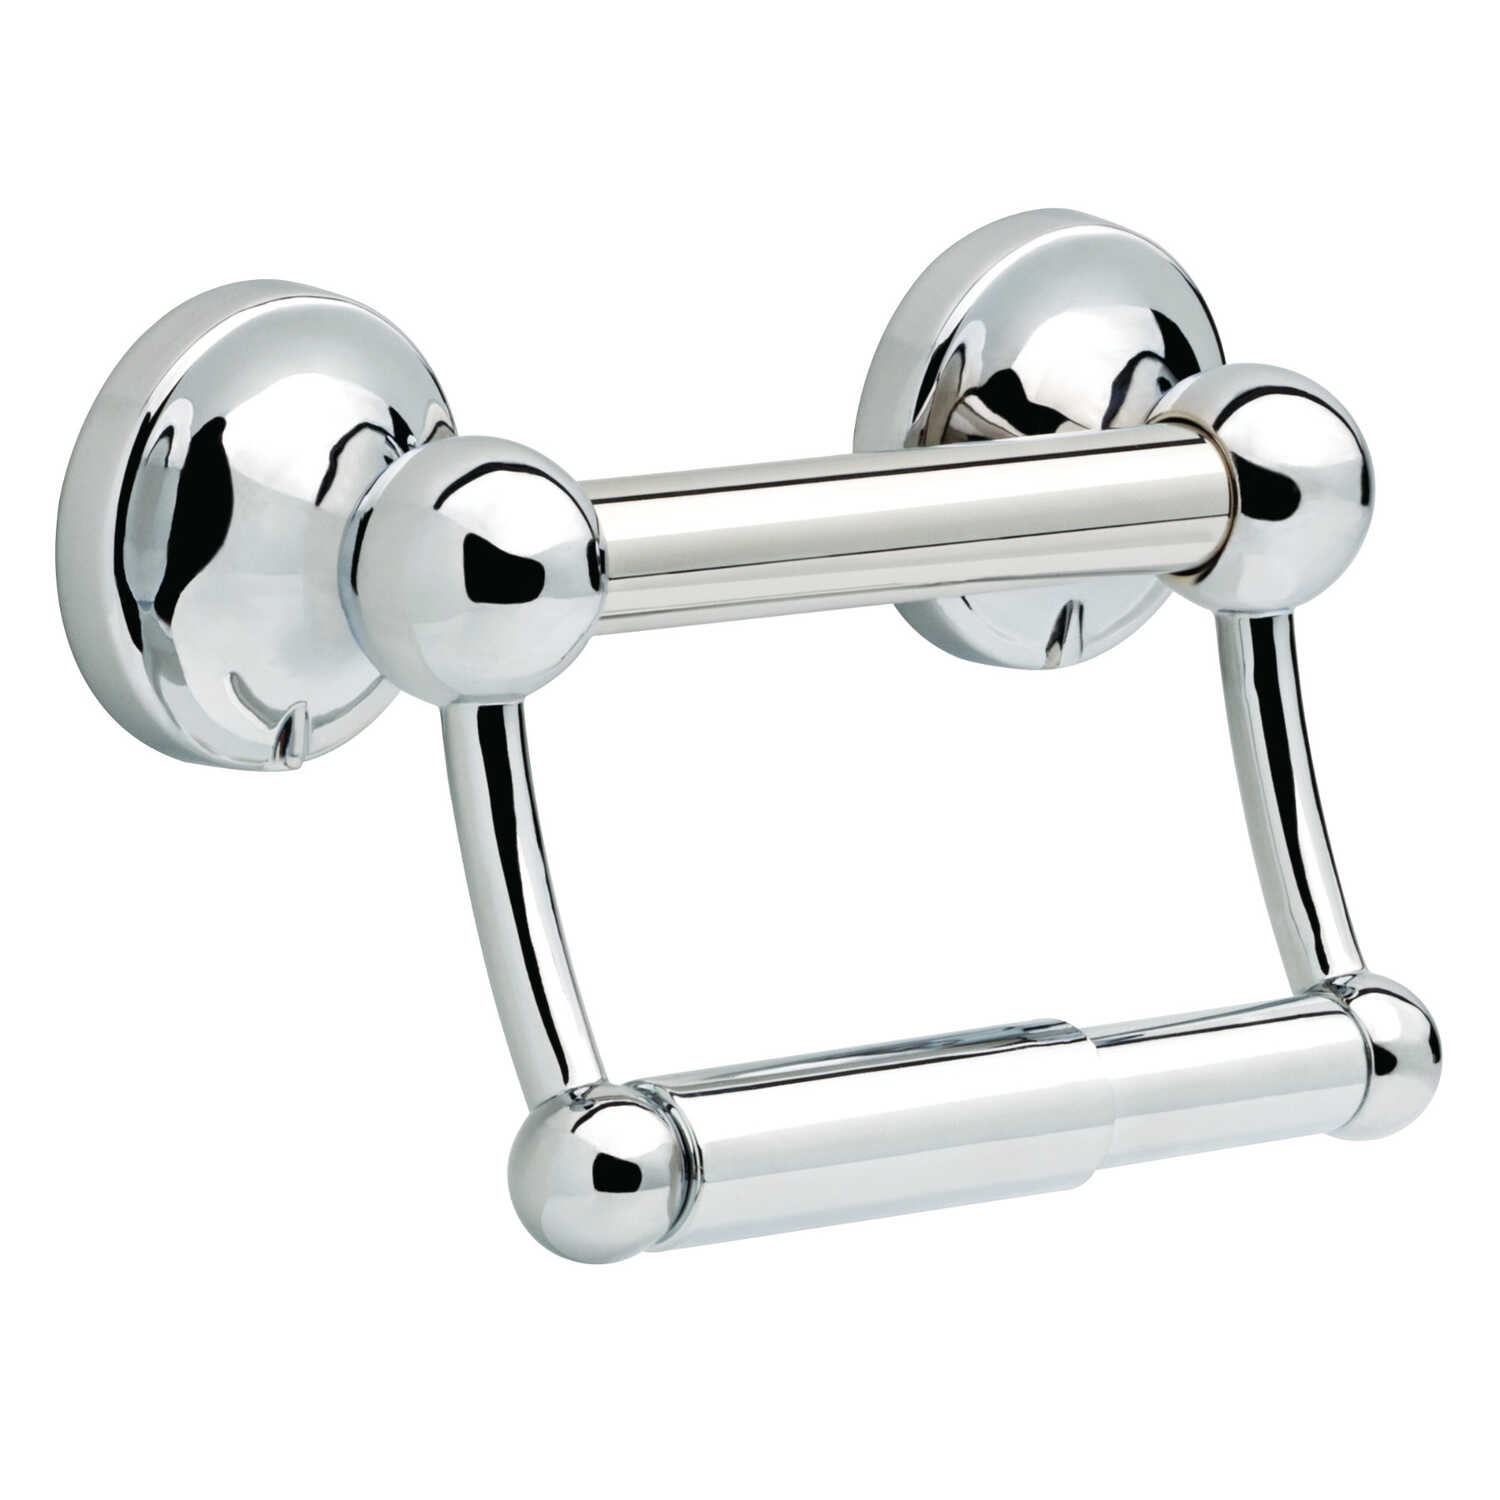 Delta  Polished Chrome  Stainless Steel  Toilet Paper Holder with Assist Bar  5 in. H x 8.7 in. W x